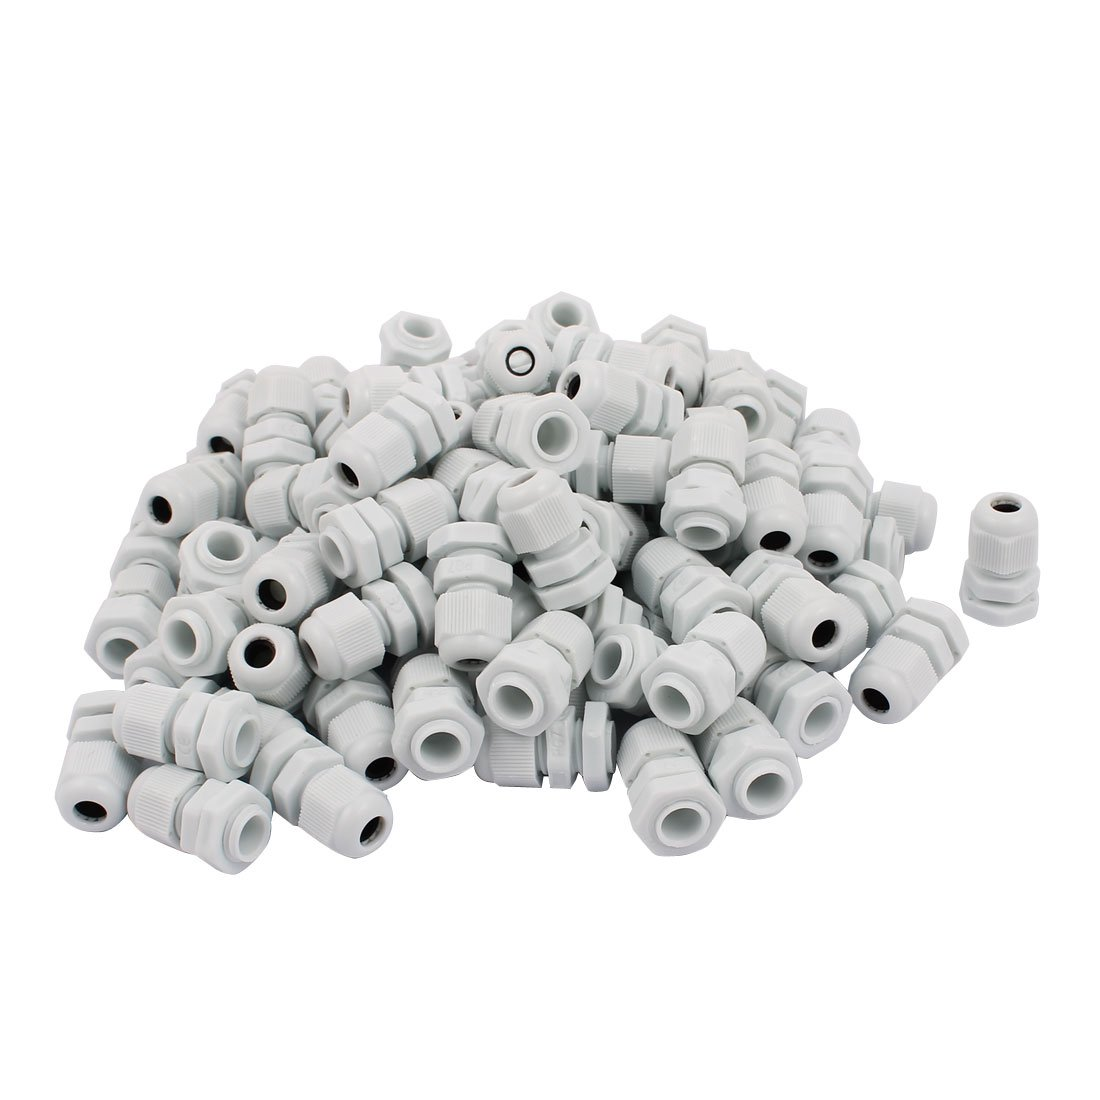 uxcell White Plastic PG7 Water Resistance Cable Gland Fixing Connector Joints Fastener 100 PCS